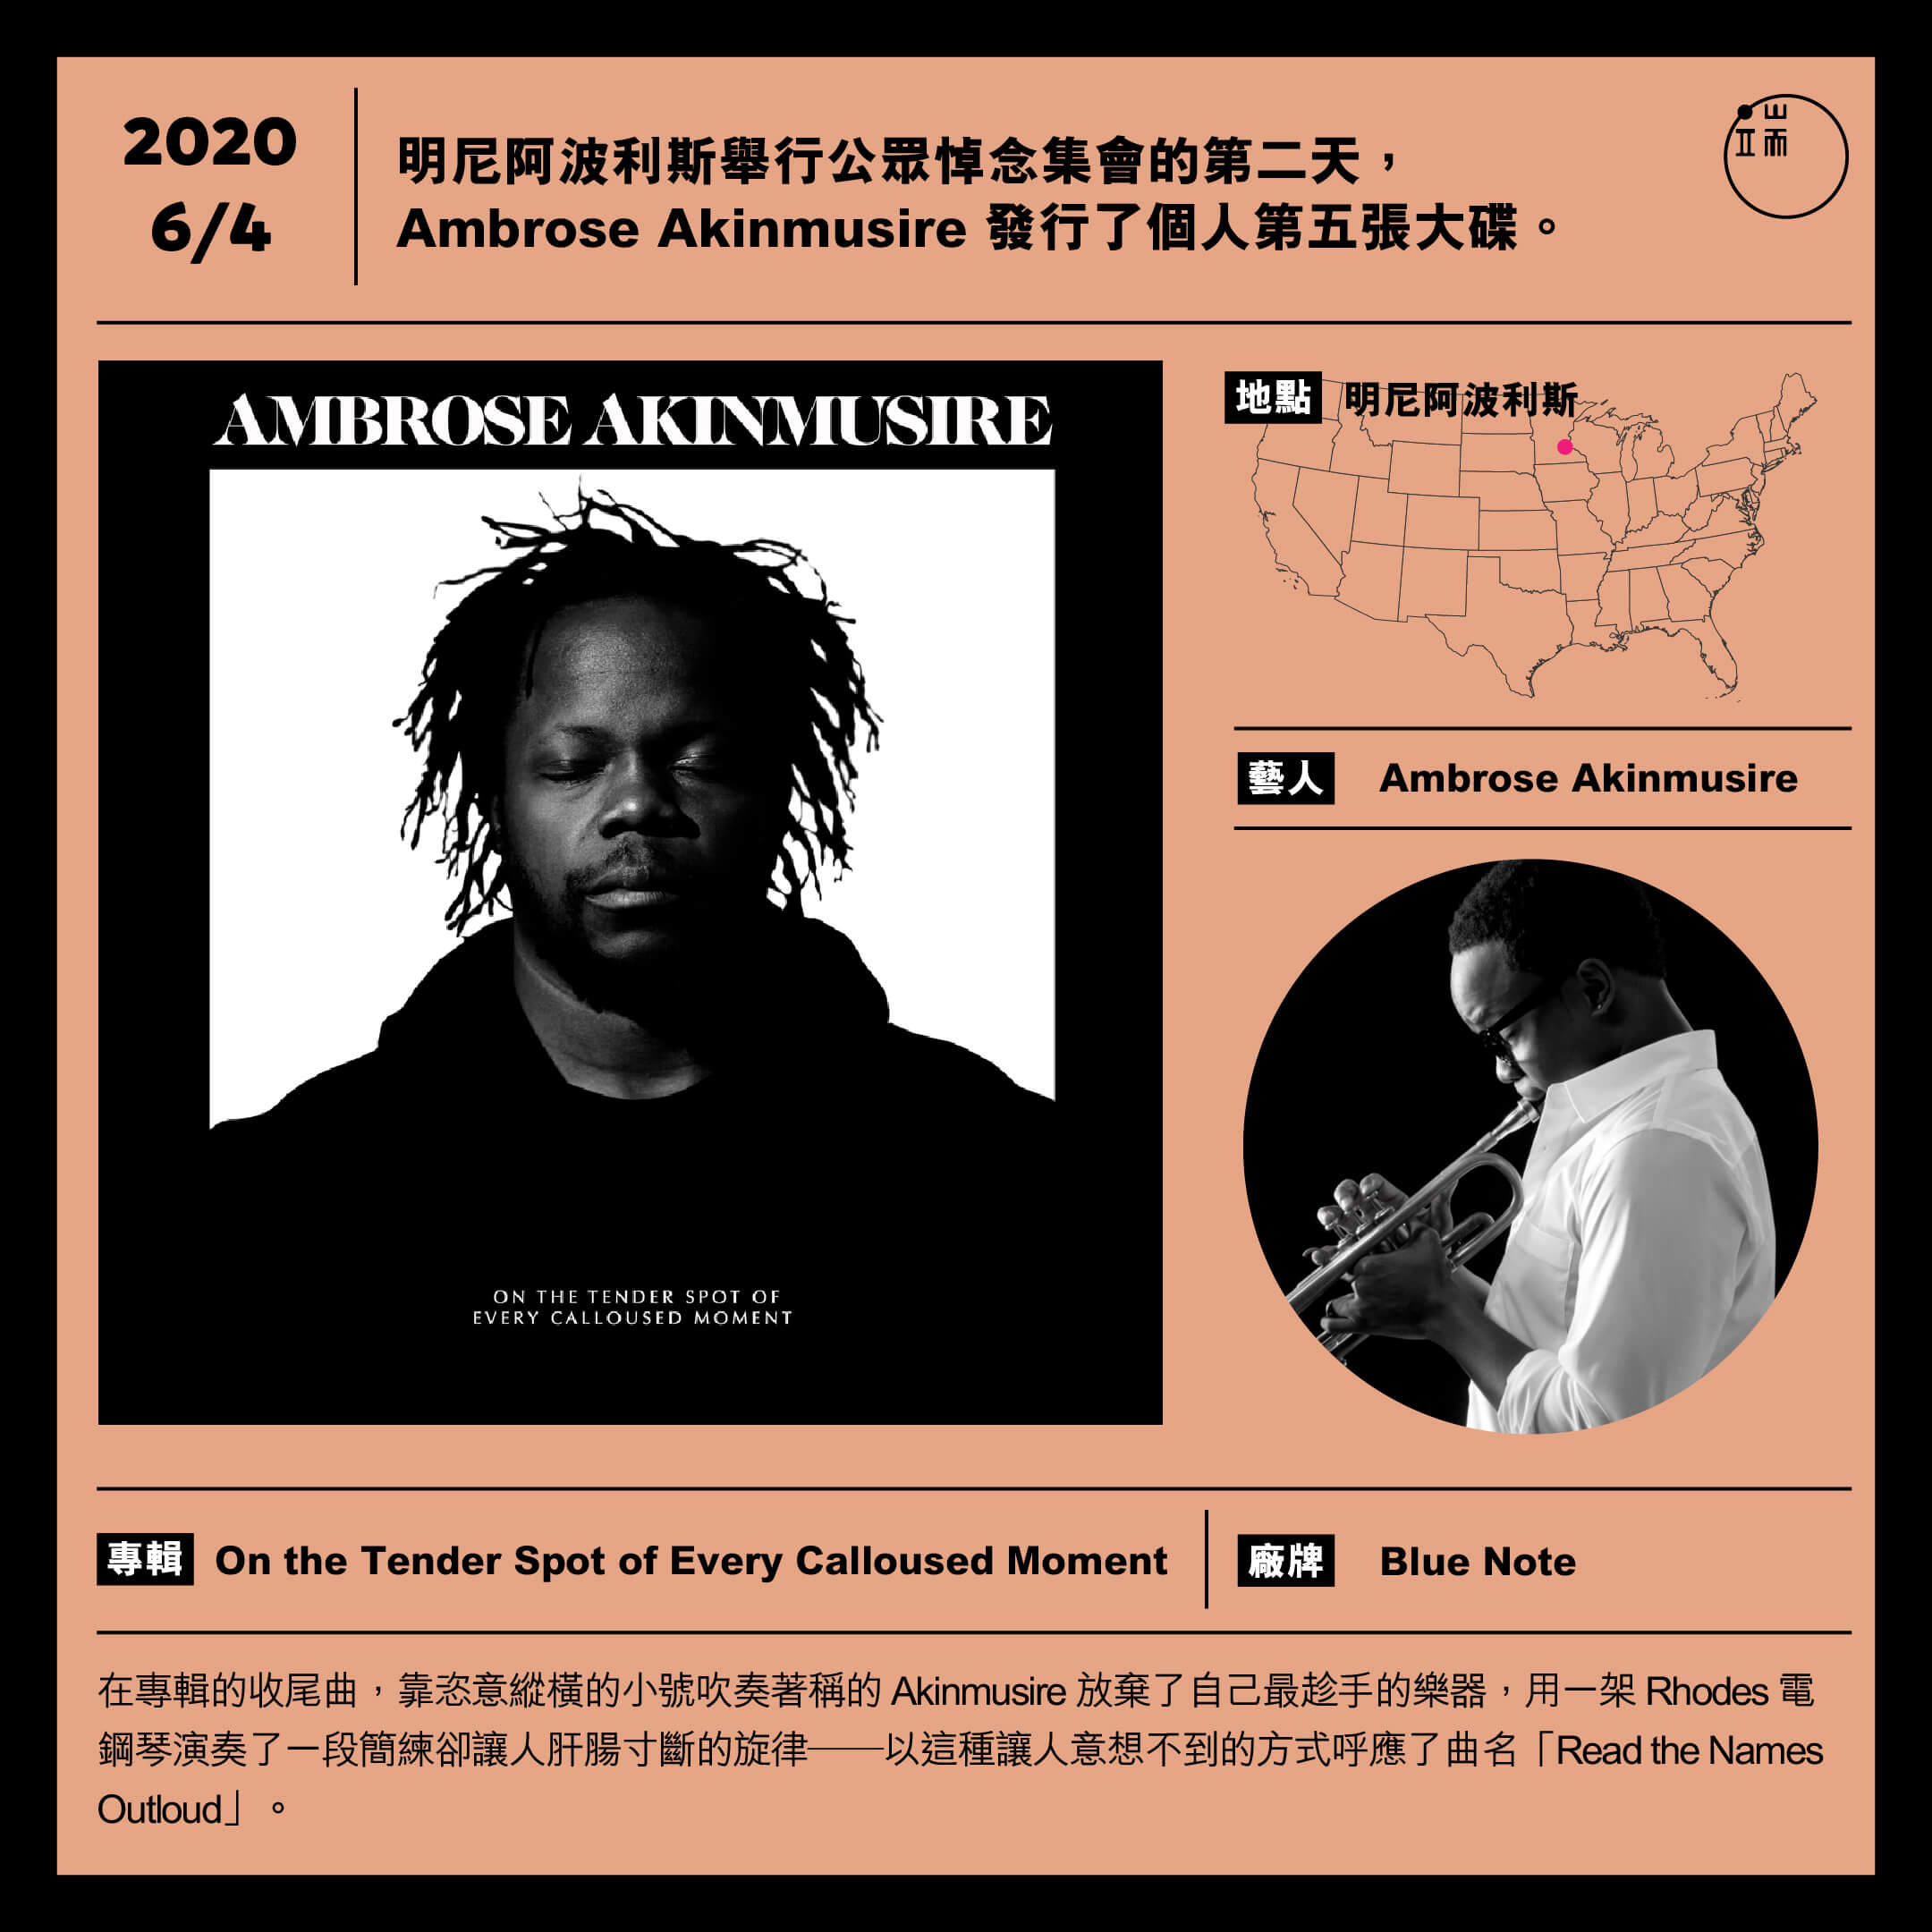 Ambrose Akinmusire - On the Tender Spot of Every Calloused Moment。